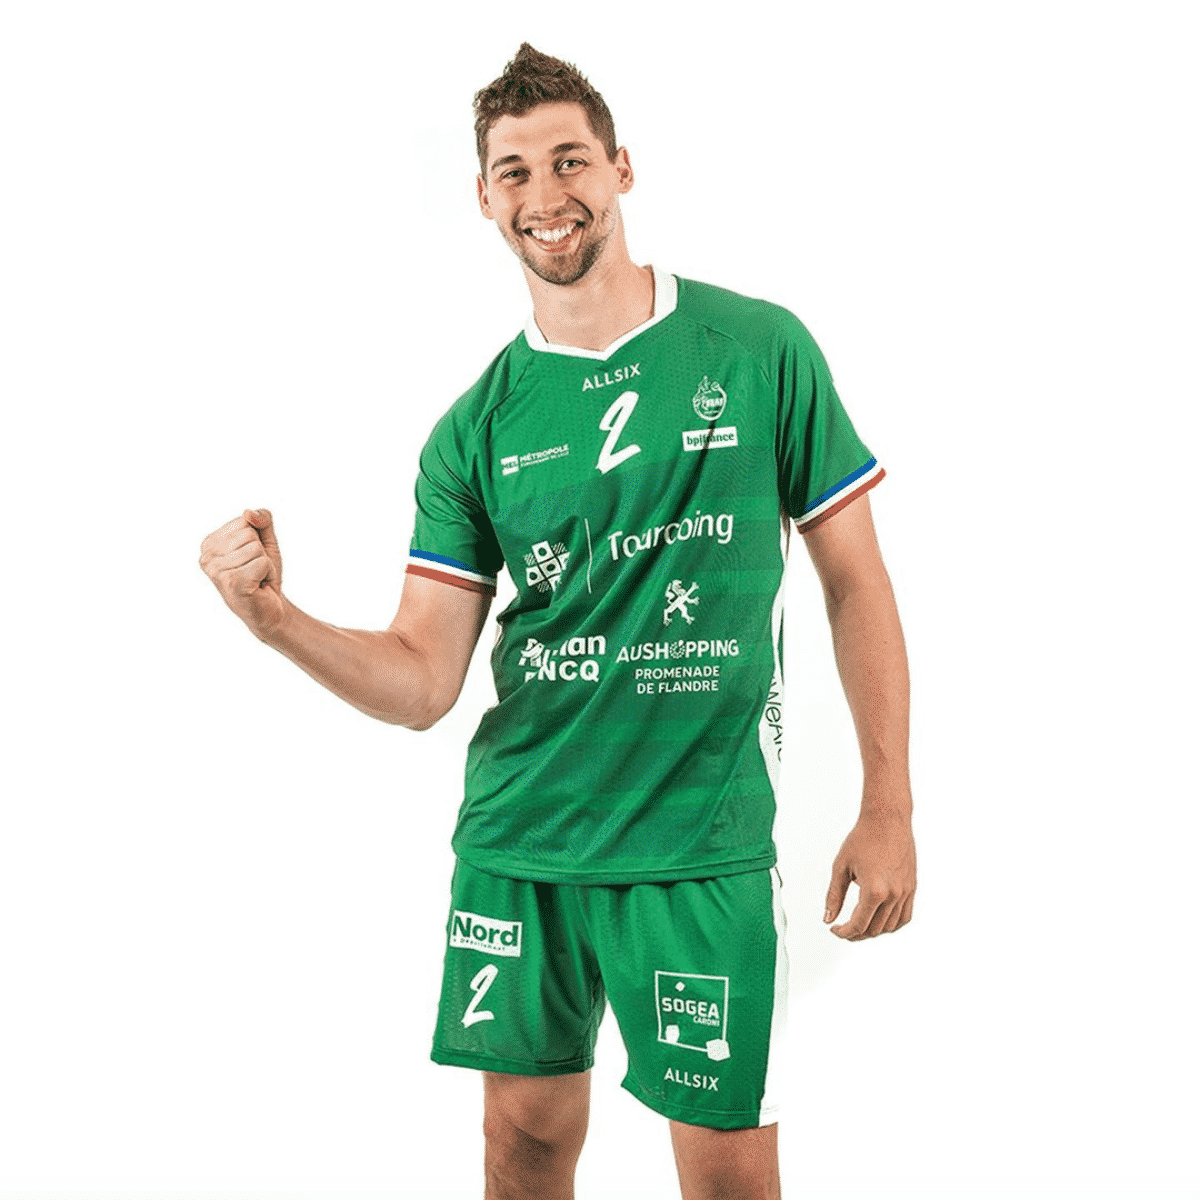 maillot-volley-tlm-allsix-2019-2020-4